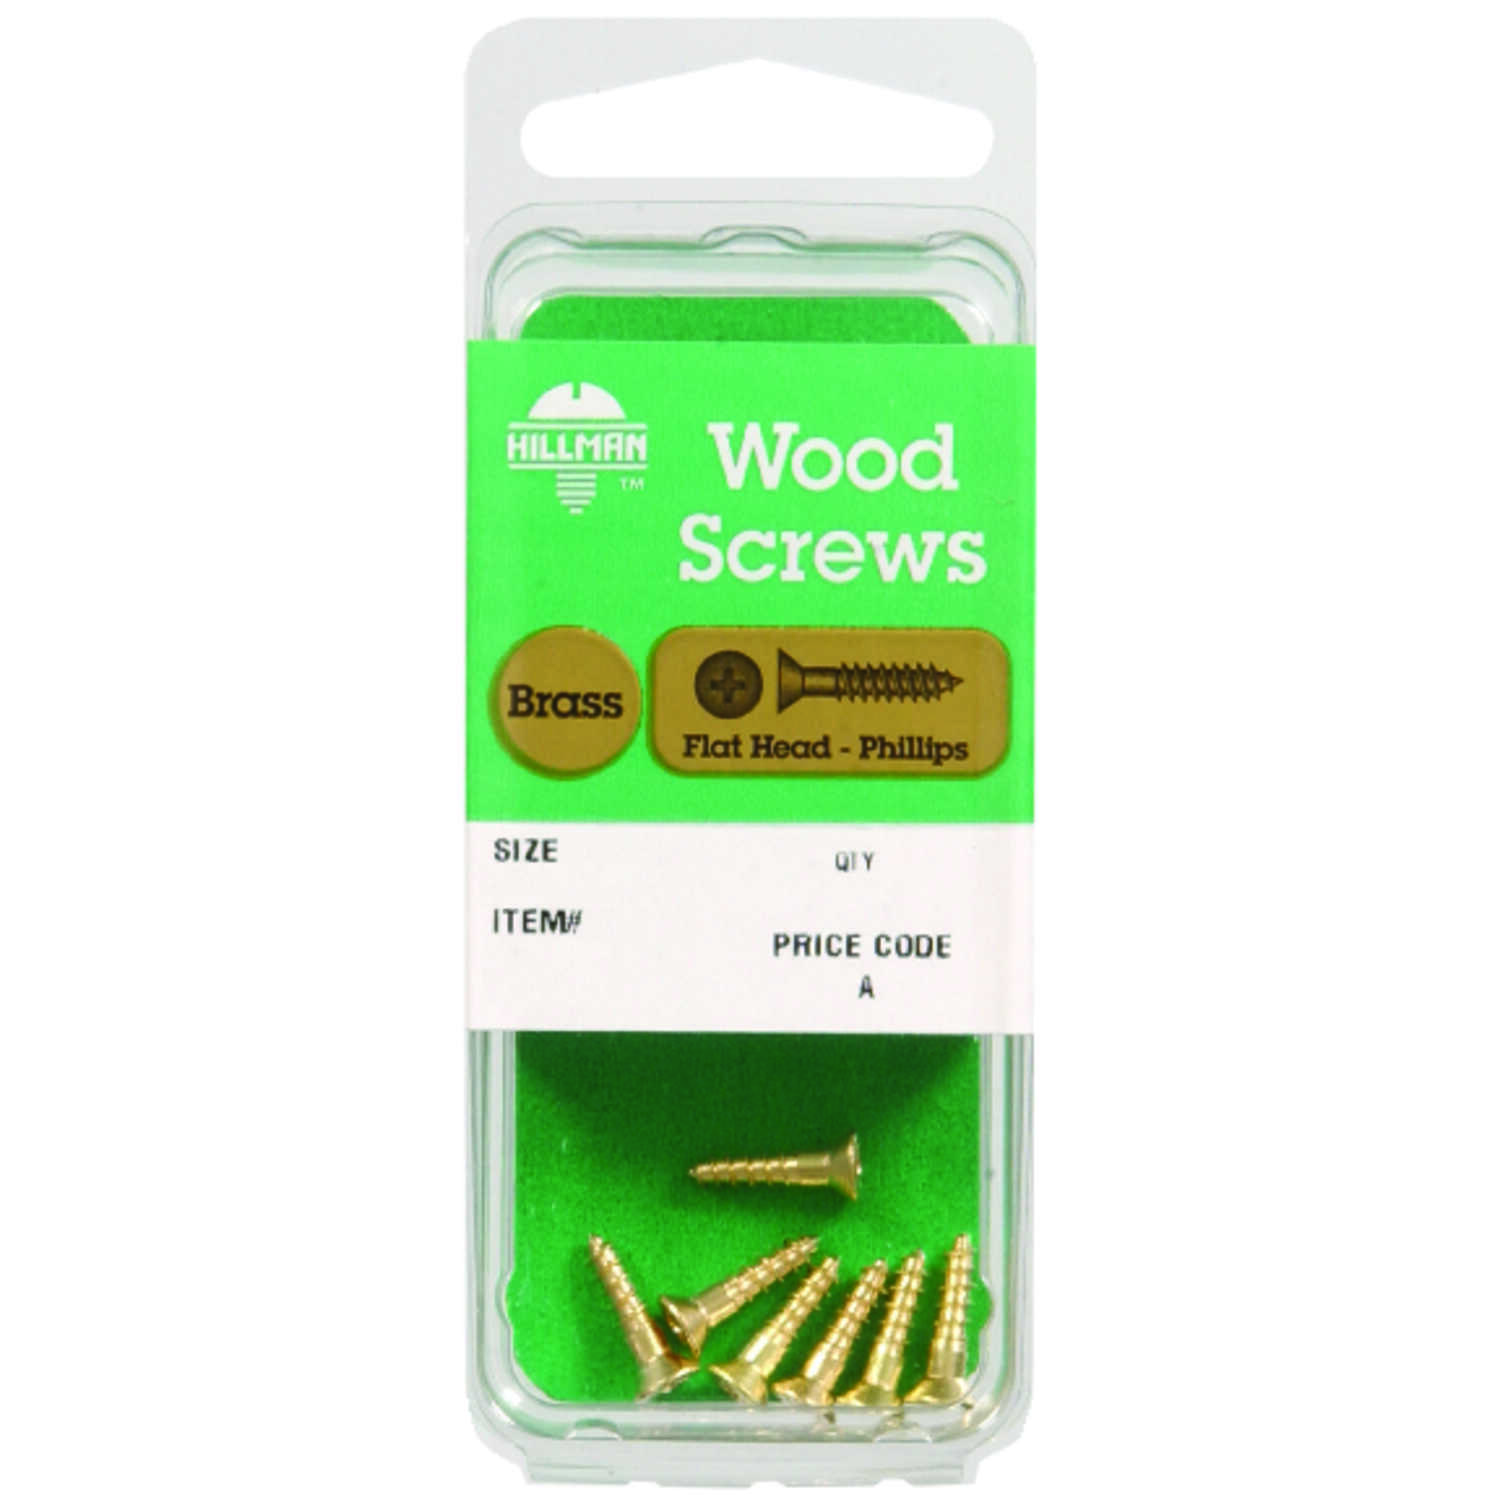 Hillman  No. 6   x 1 in. L Phillips  Flat Head Brass  Wood Screws  10 pk